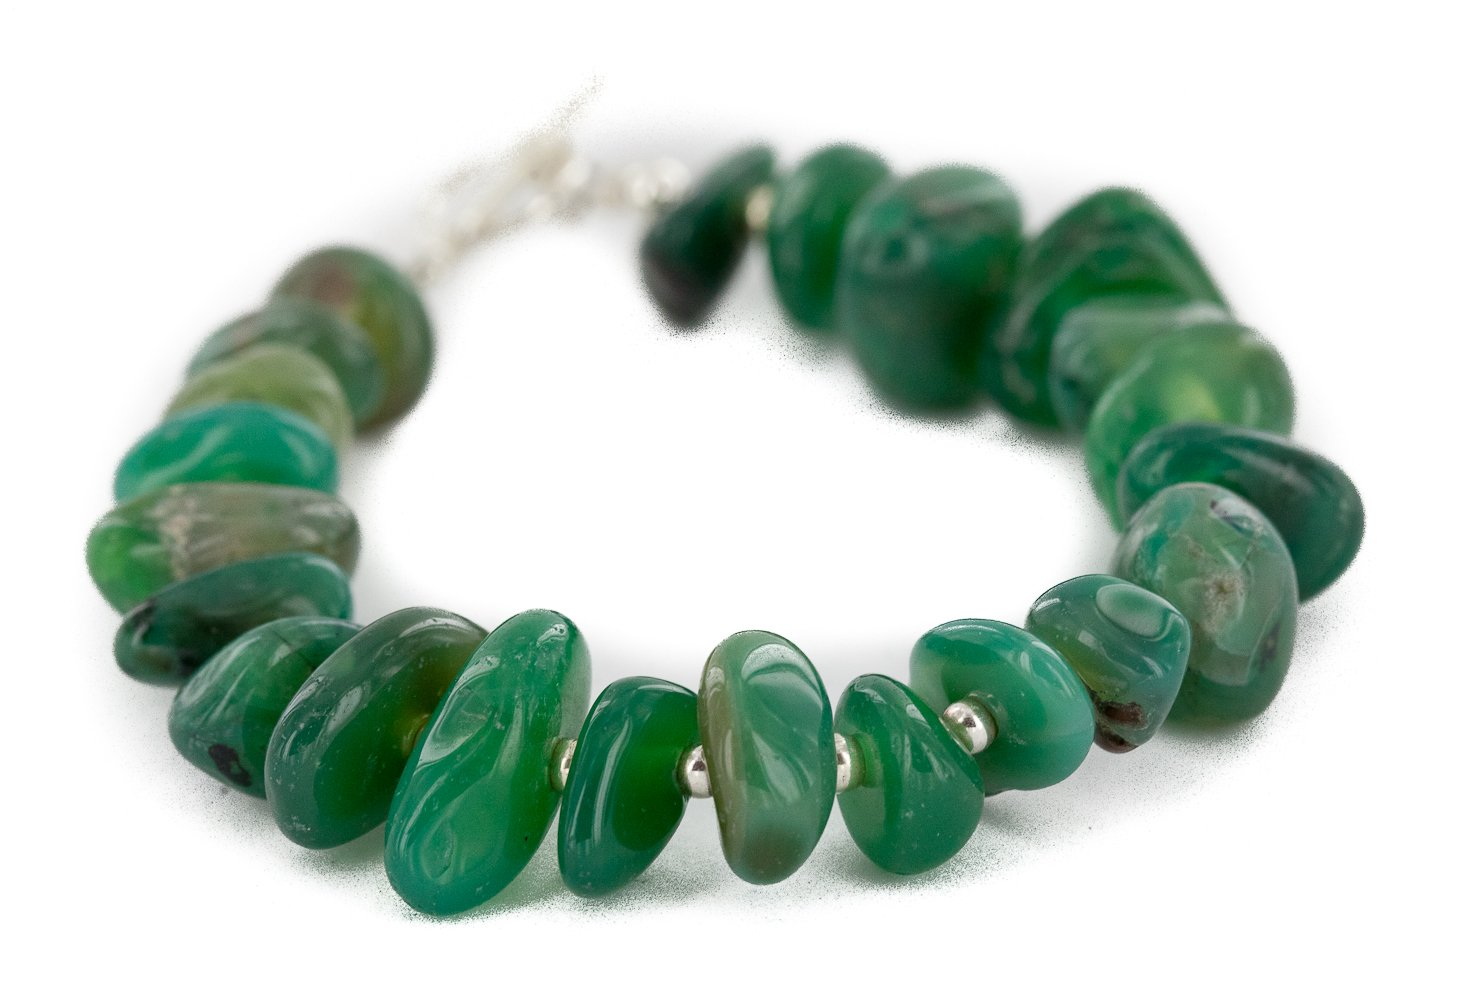 Certified Boston Mall Authentic Navajo Natural Native American Opening large release sale Jade Bracelet